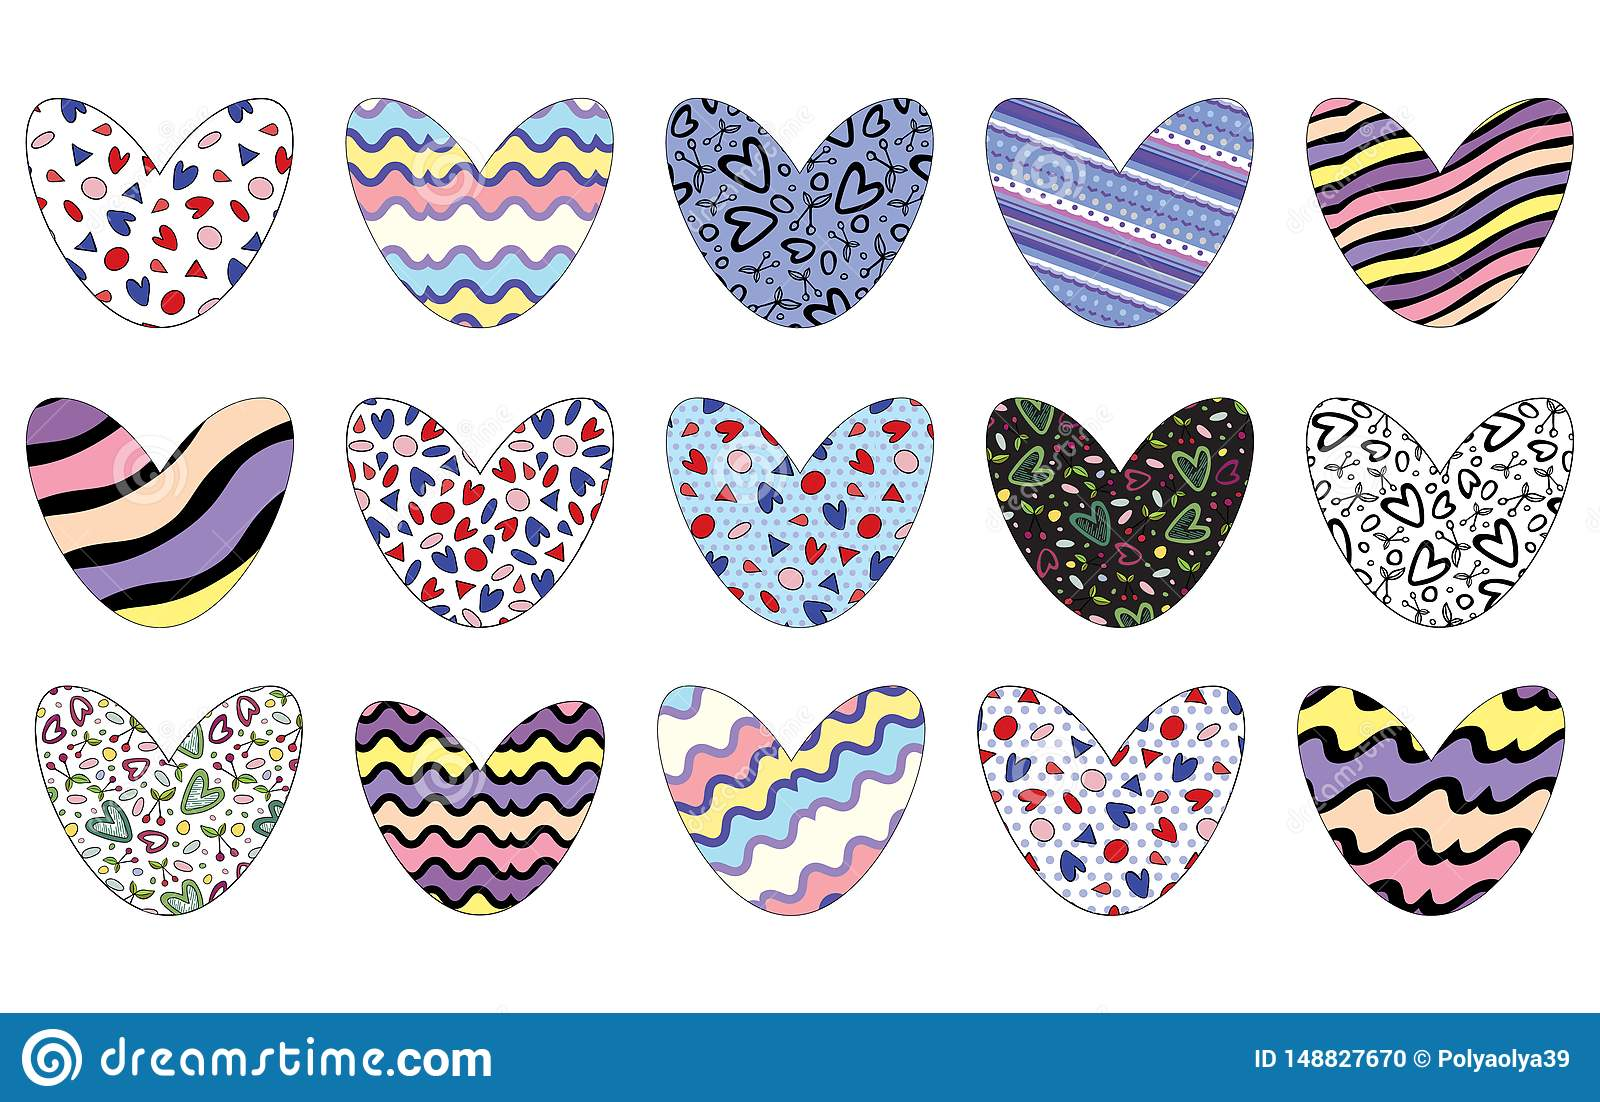 Hearts decorated in varios patterns with editable stroke isolated on white background. Vector illustration.